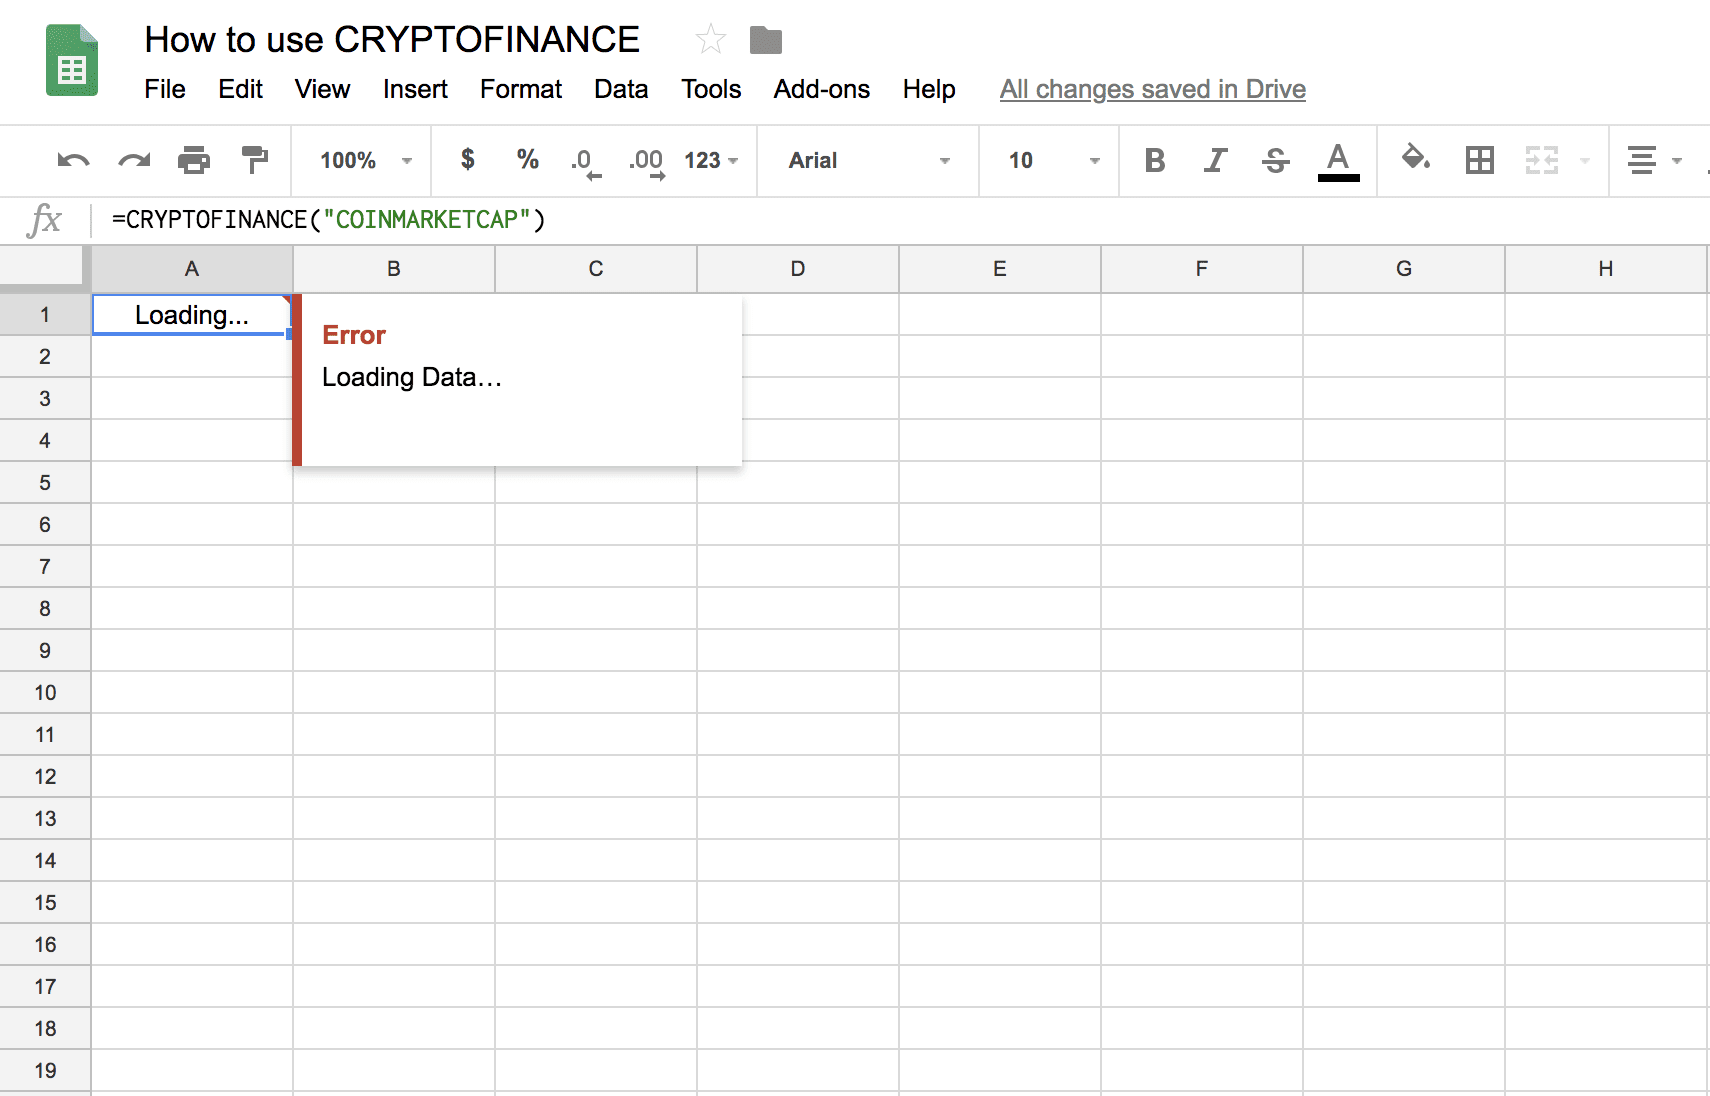 Cryptofinance: Loading Data in Google Sheets